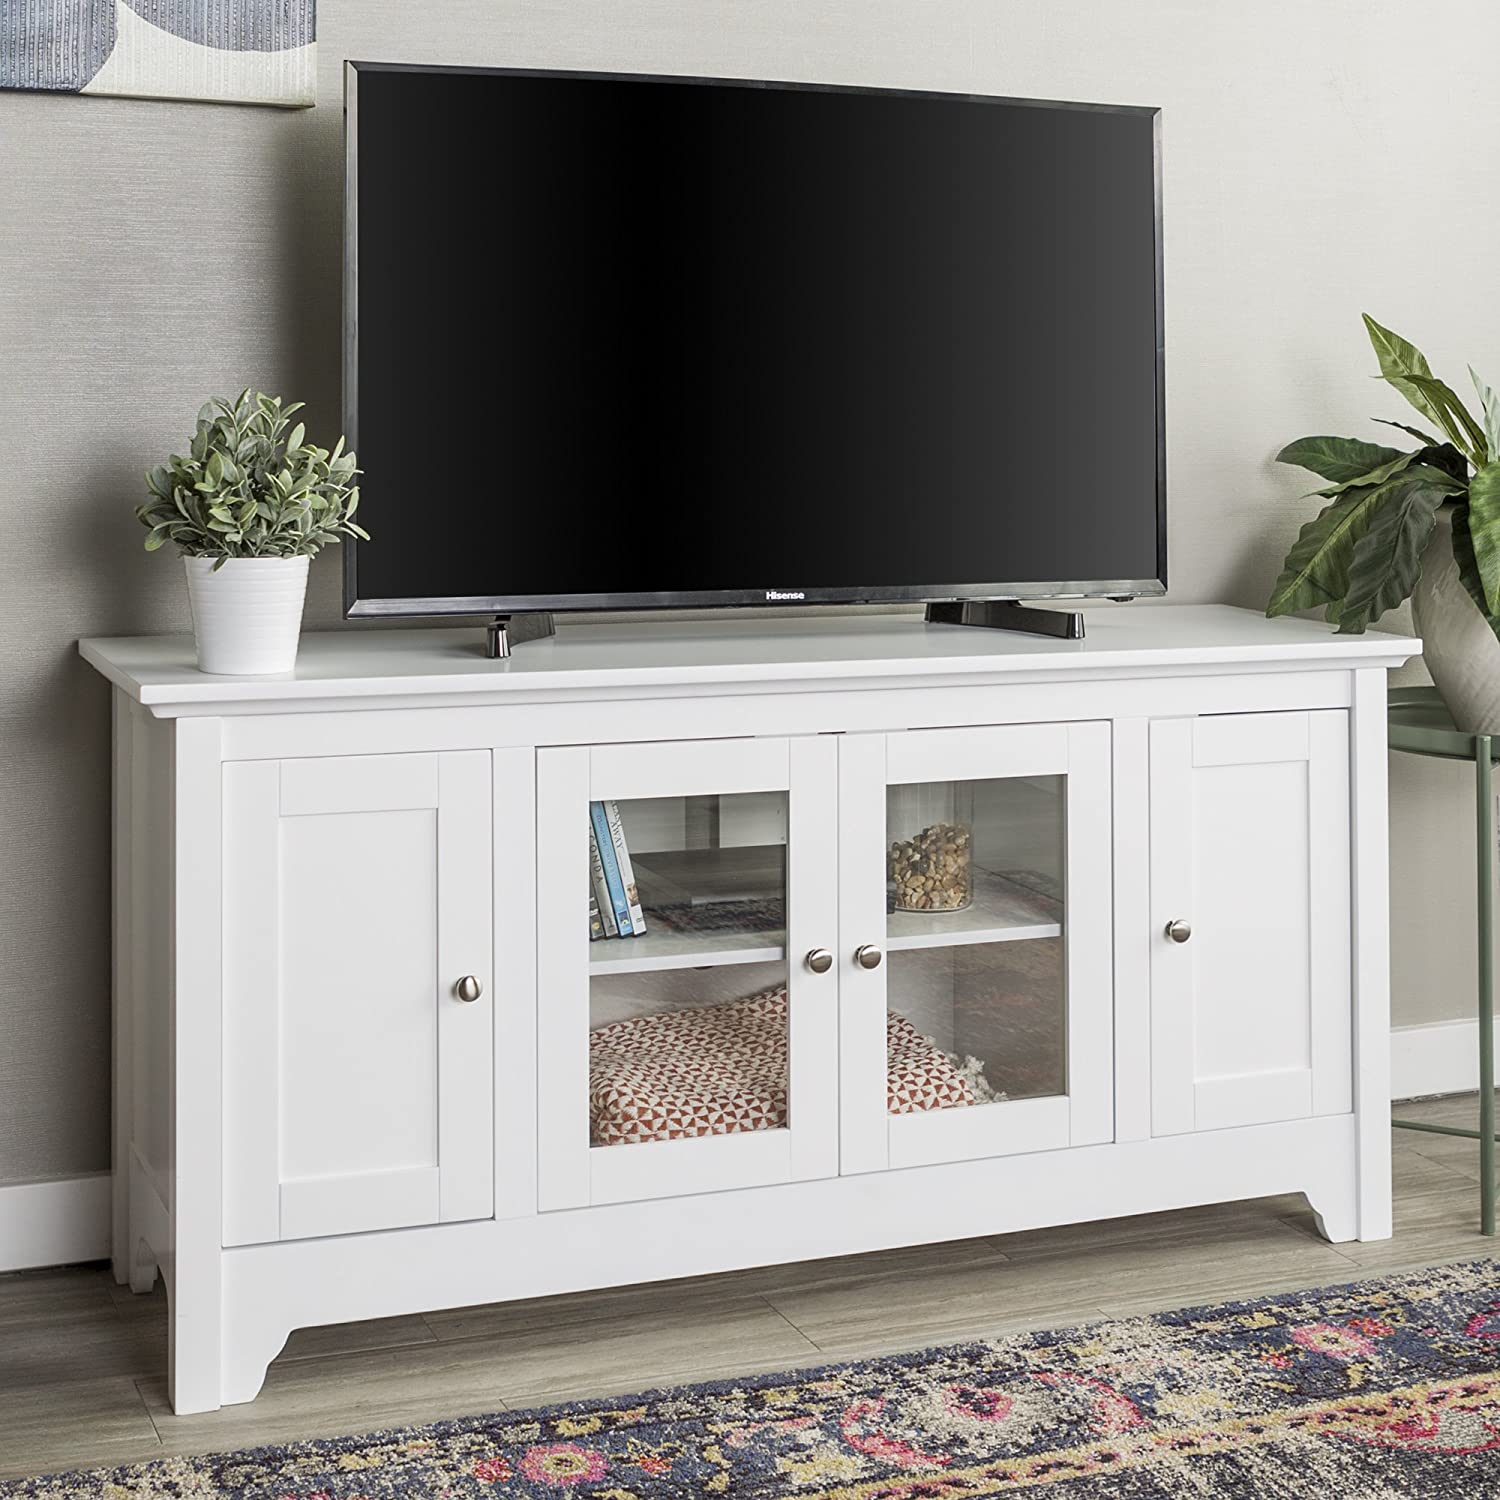 WE Furniture White 52 Wood Modern Highboy Style Tall TV Stand for Flat Screen TVs Up to 65 Entertainment Center